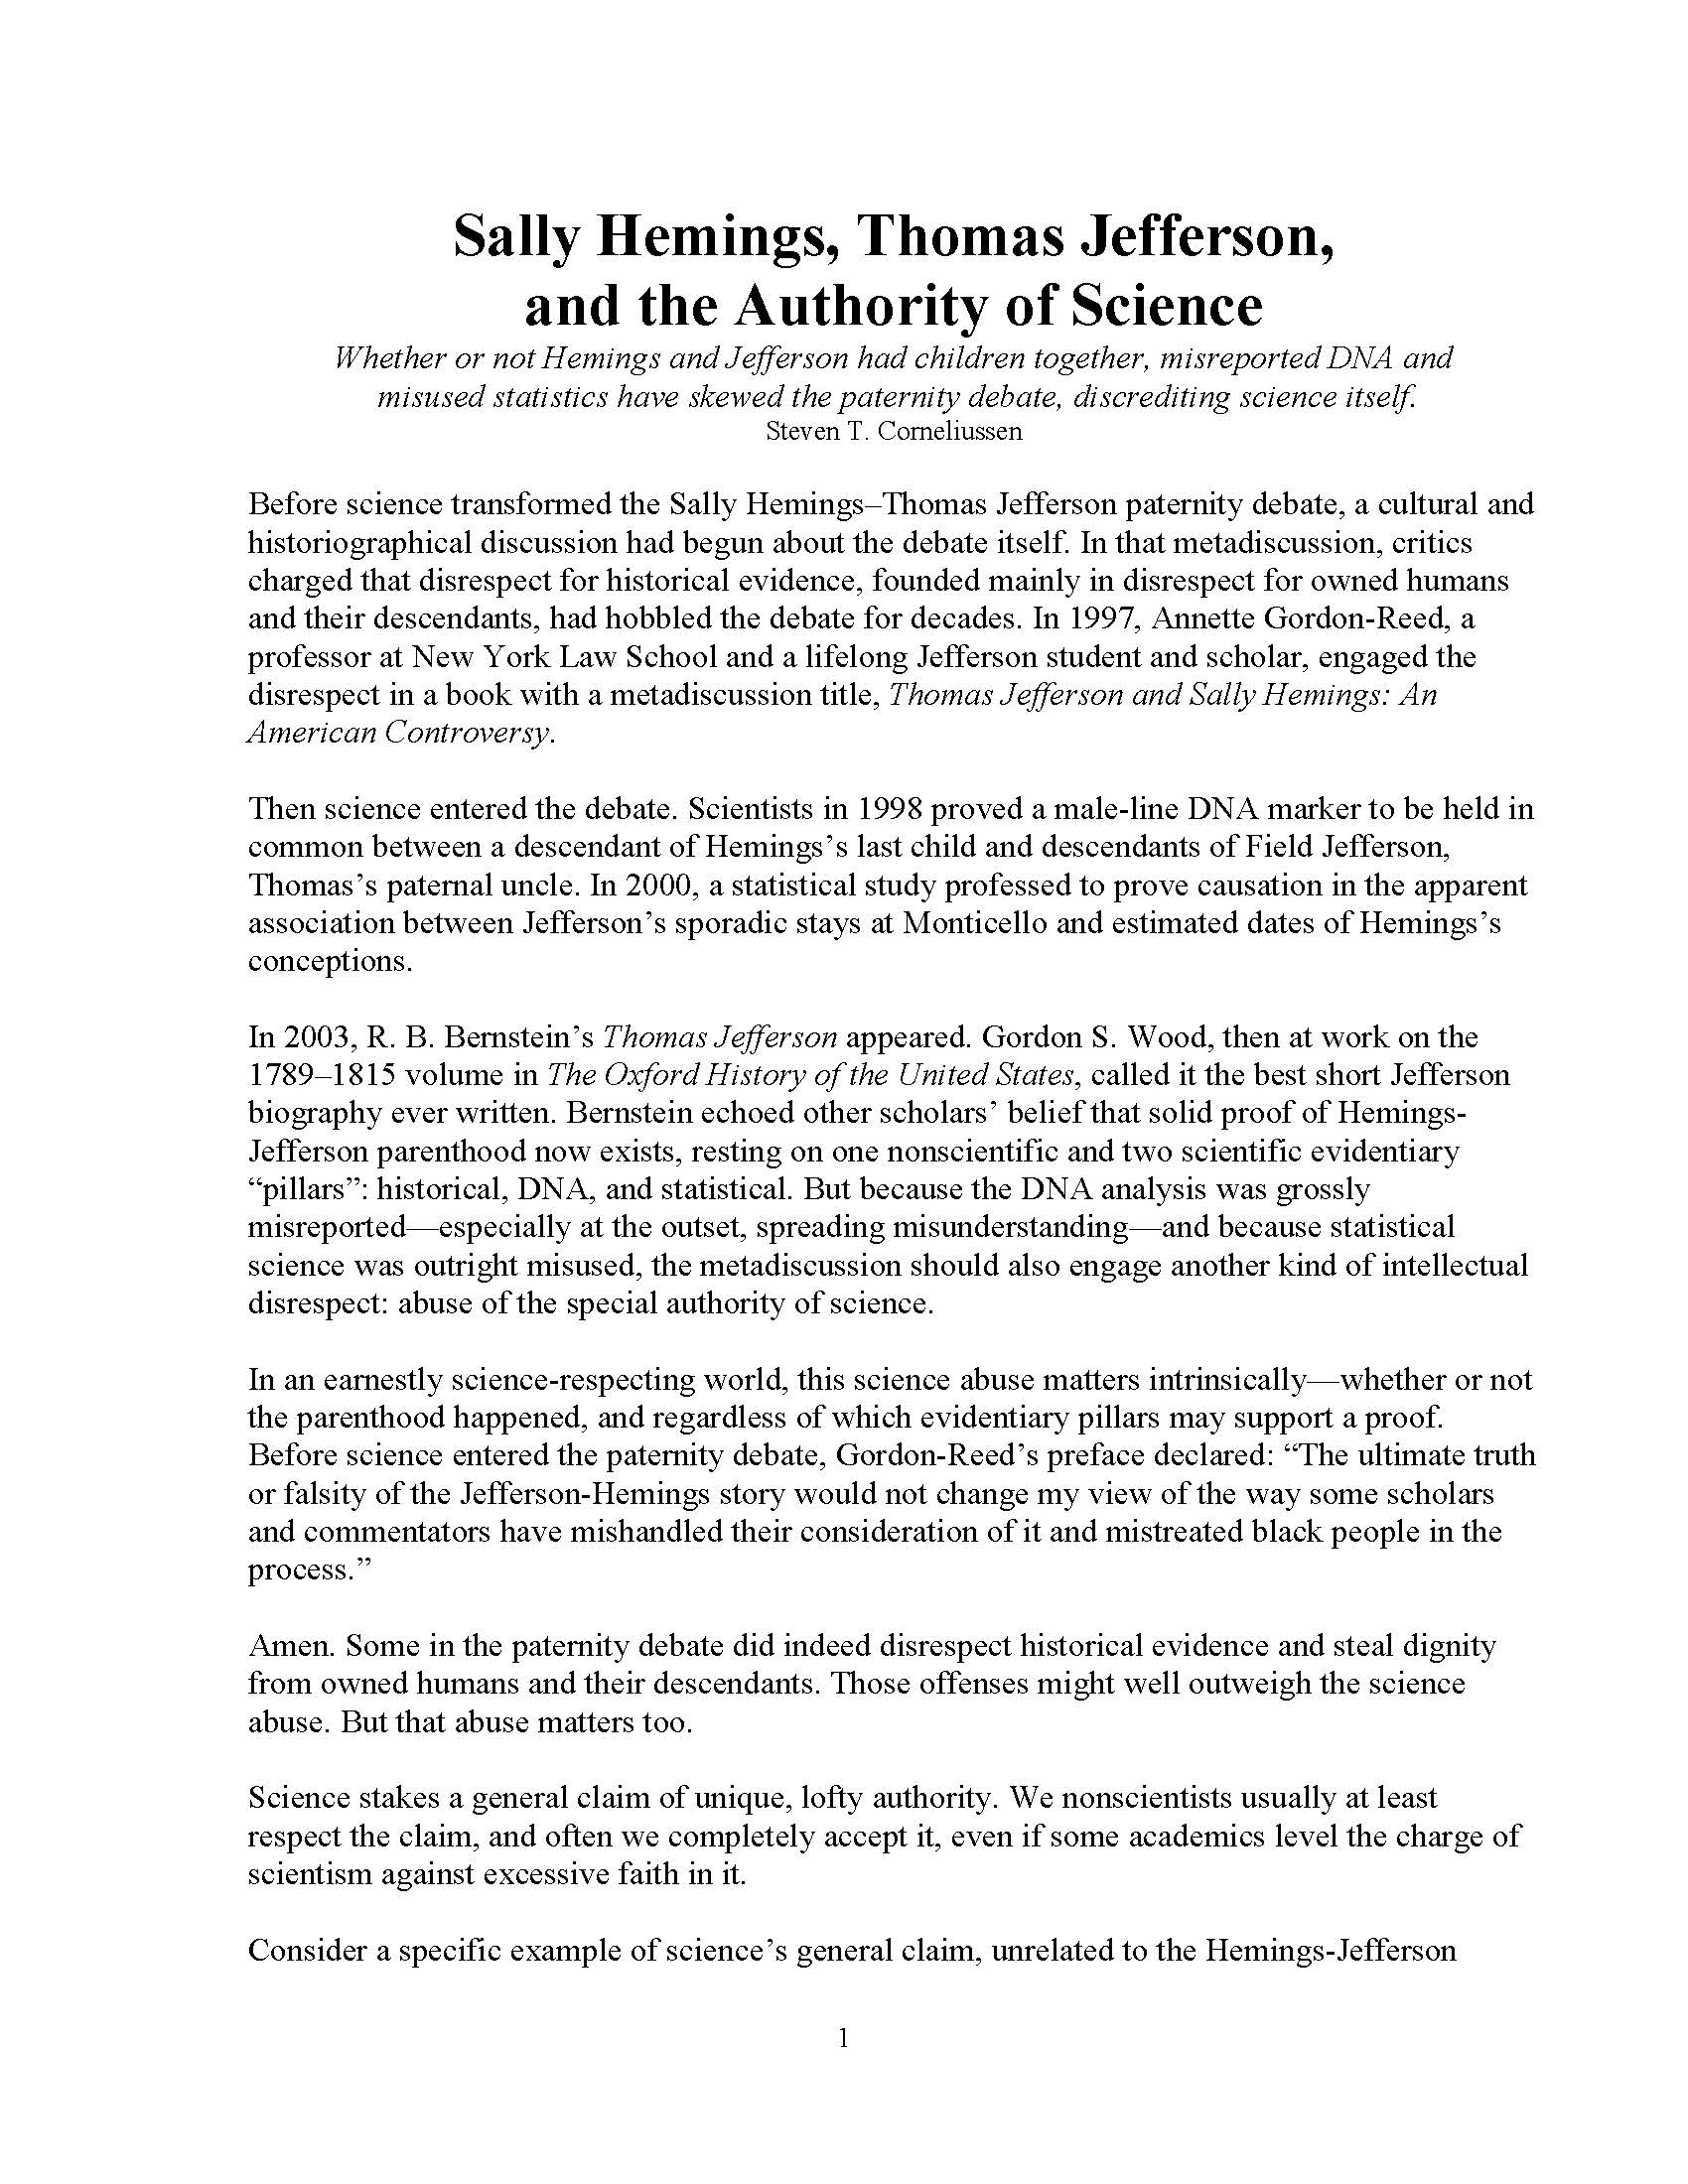 Corneliussen Authority of Sciencei_Page_01.jpg